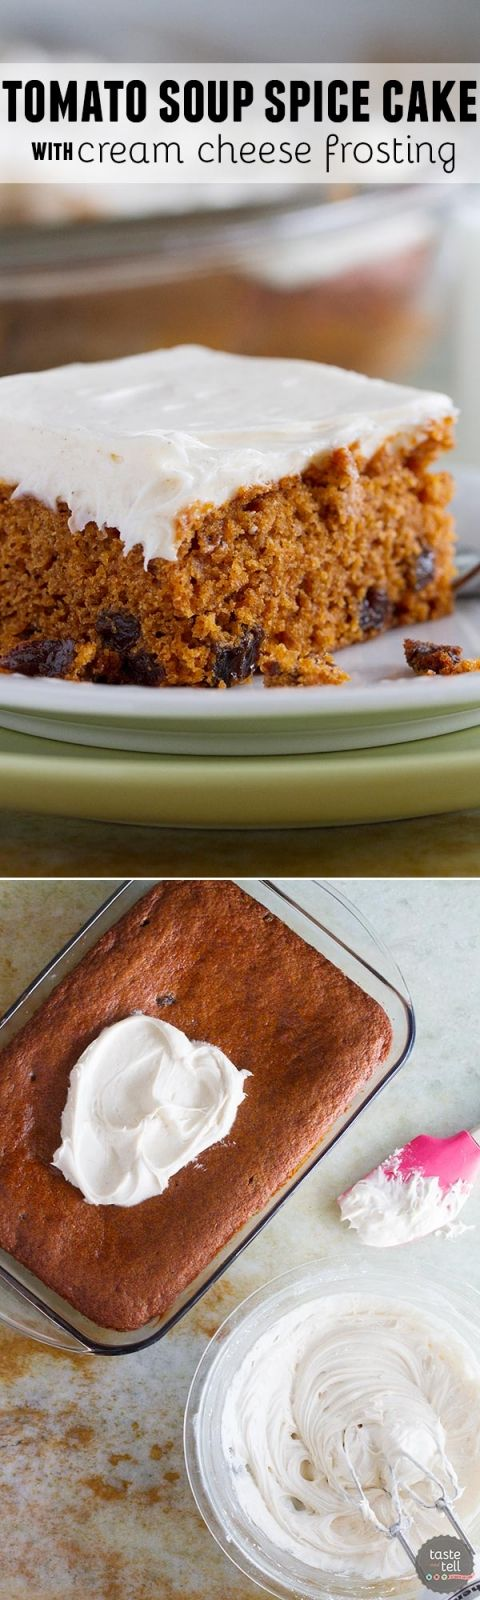 You would never guess that a can of tomato soup is the secret ingredient in this retro cake! A recipe that has been around for decades, this Tomato Soup Spice Cake Recipe with Cream Cheese Frosting is so simple yet a total crowd favorite.